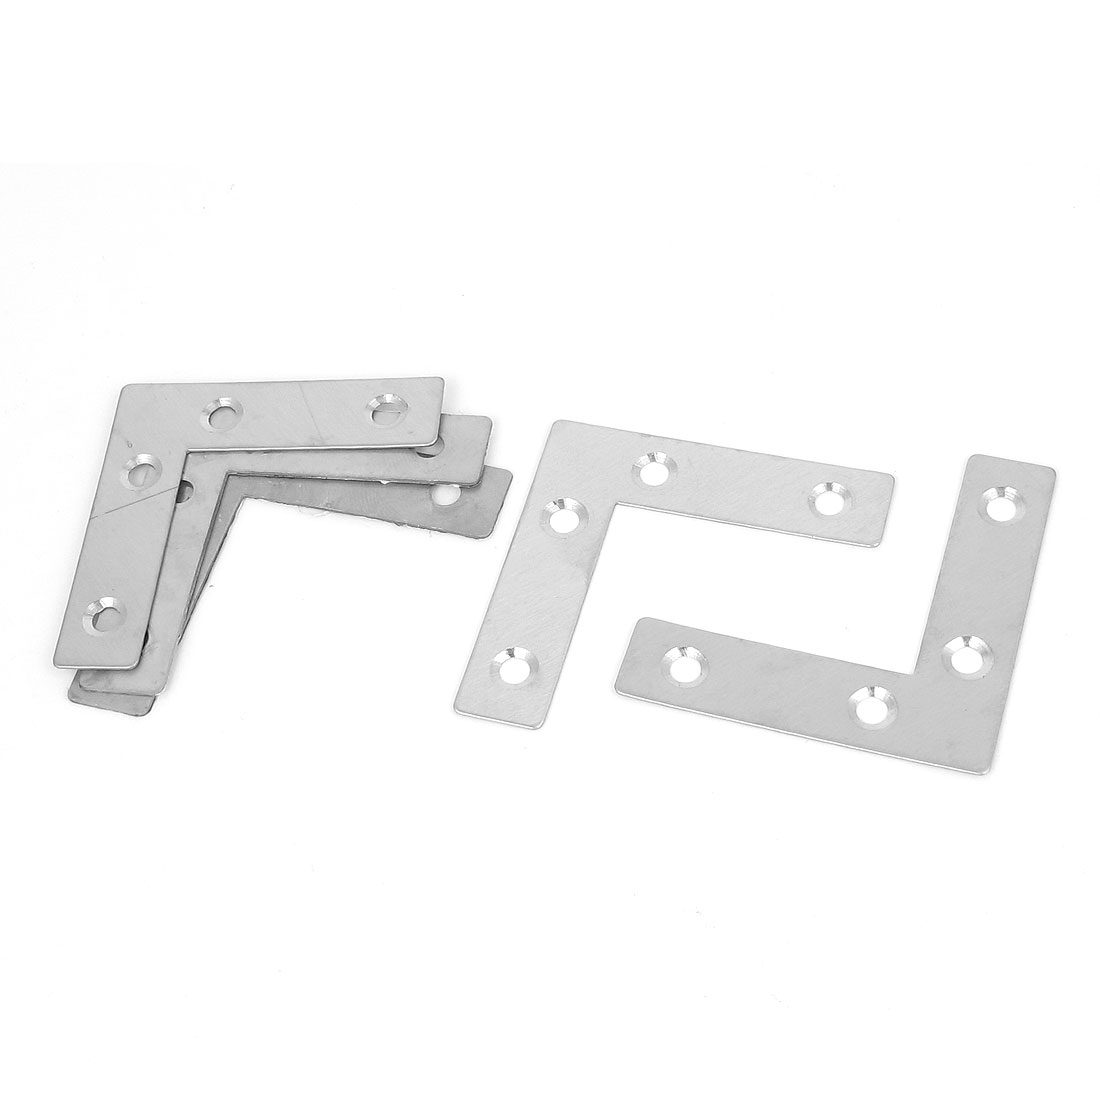 60mmx60mm Flat L Shape Corner Brace Plate Right Angle Bracket Support 5pcs